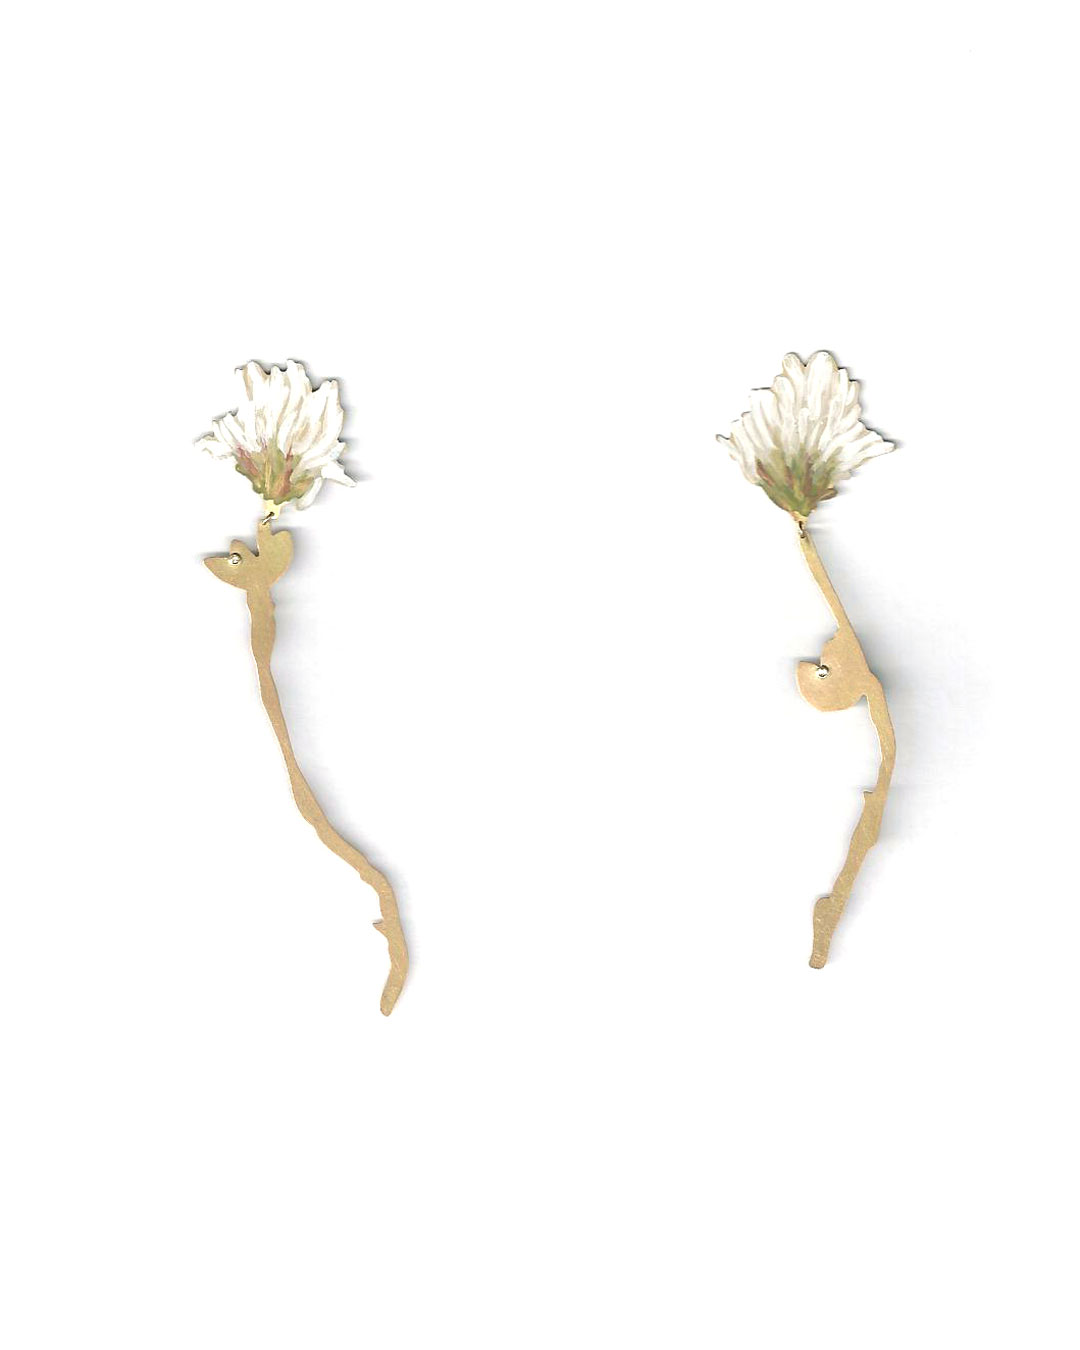 Christopher Thompson Royds, Natura Morta: White Clover, 2016, earrings; 18ct gold, hand-painted, diamonds, 75 x 20 mm, €1150